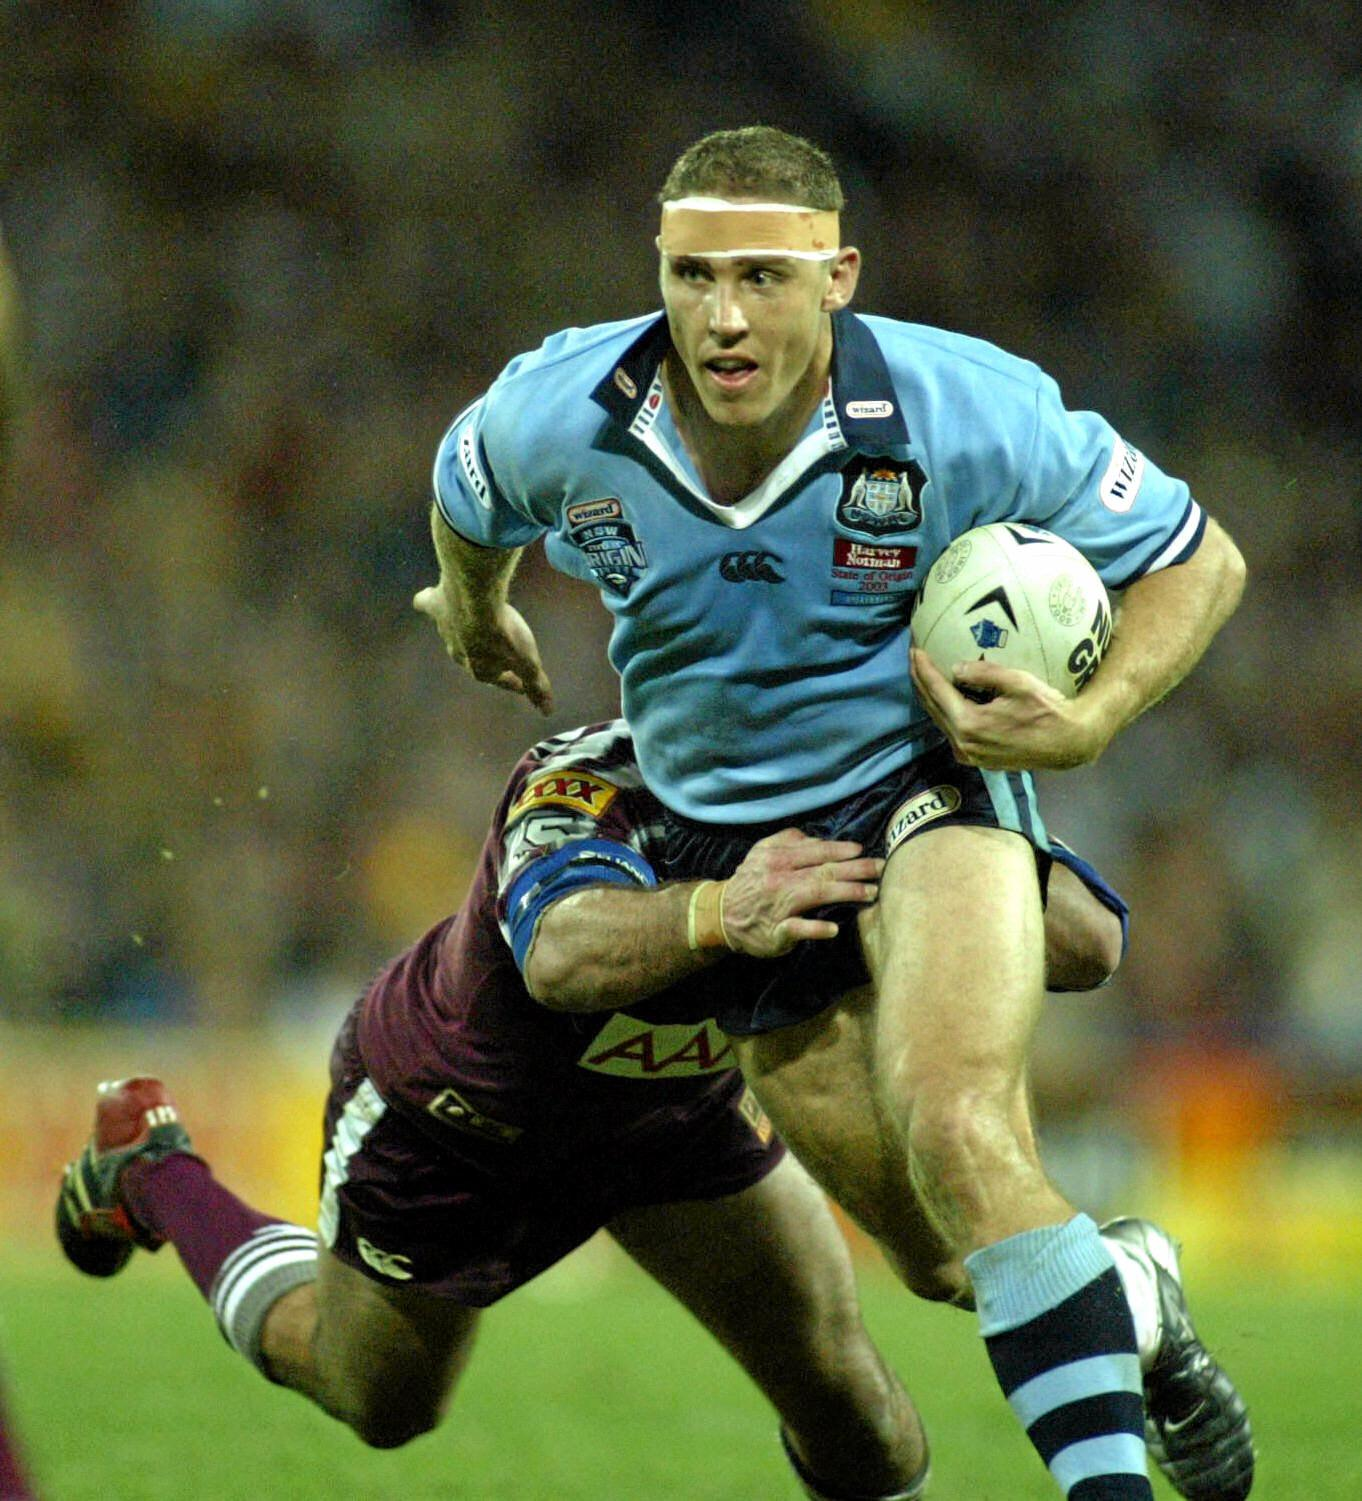 JUNE 11, 2003 : Michael De Vere during Game One of State of Origin RL match at Suncorp Stadium in Brisbane 11/06/03. Pic Mark Evans.Rugby League A/CT